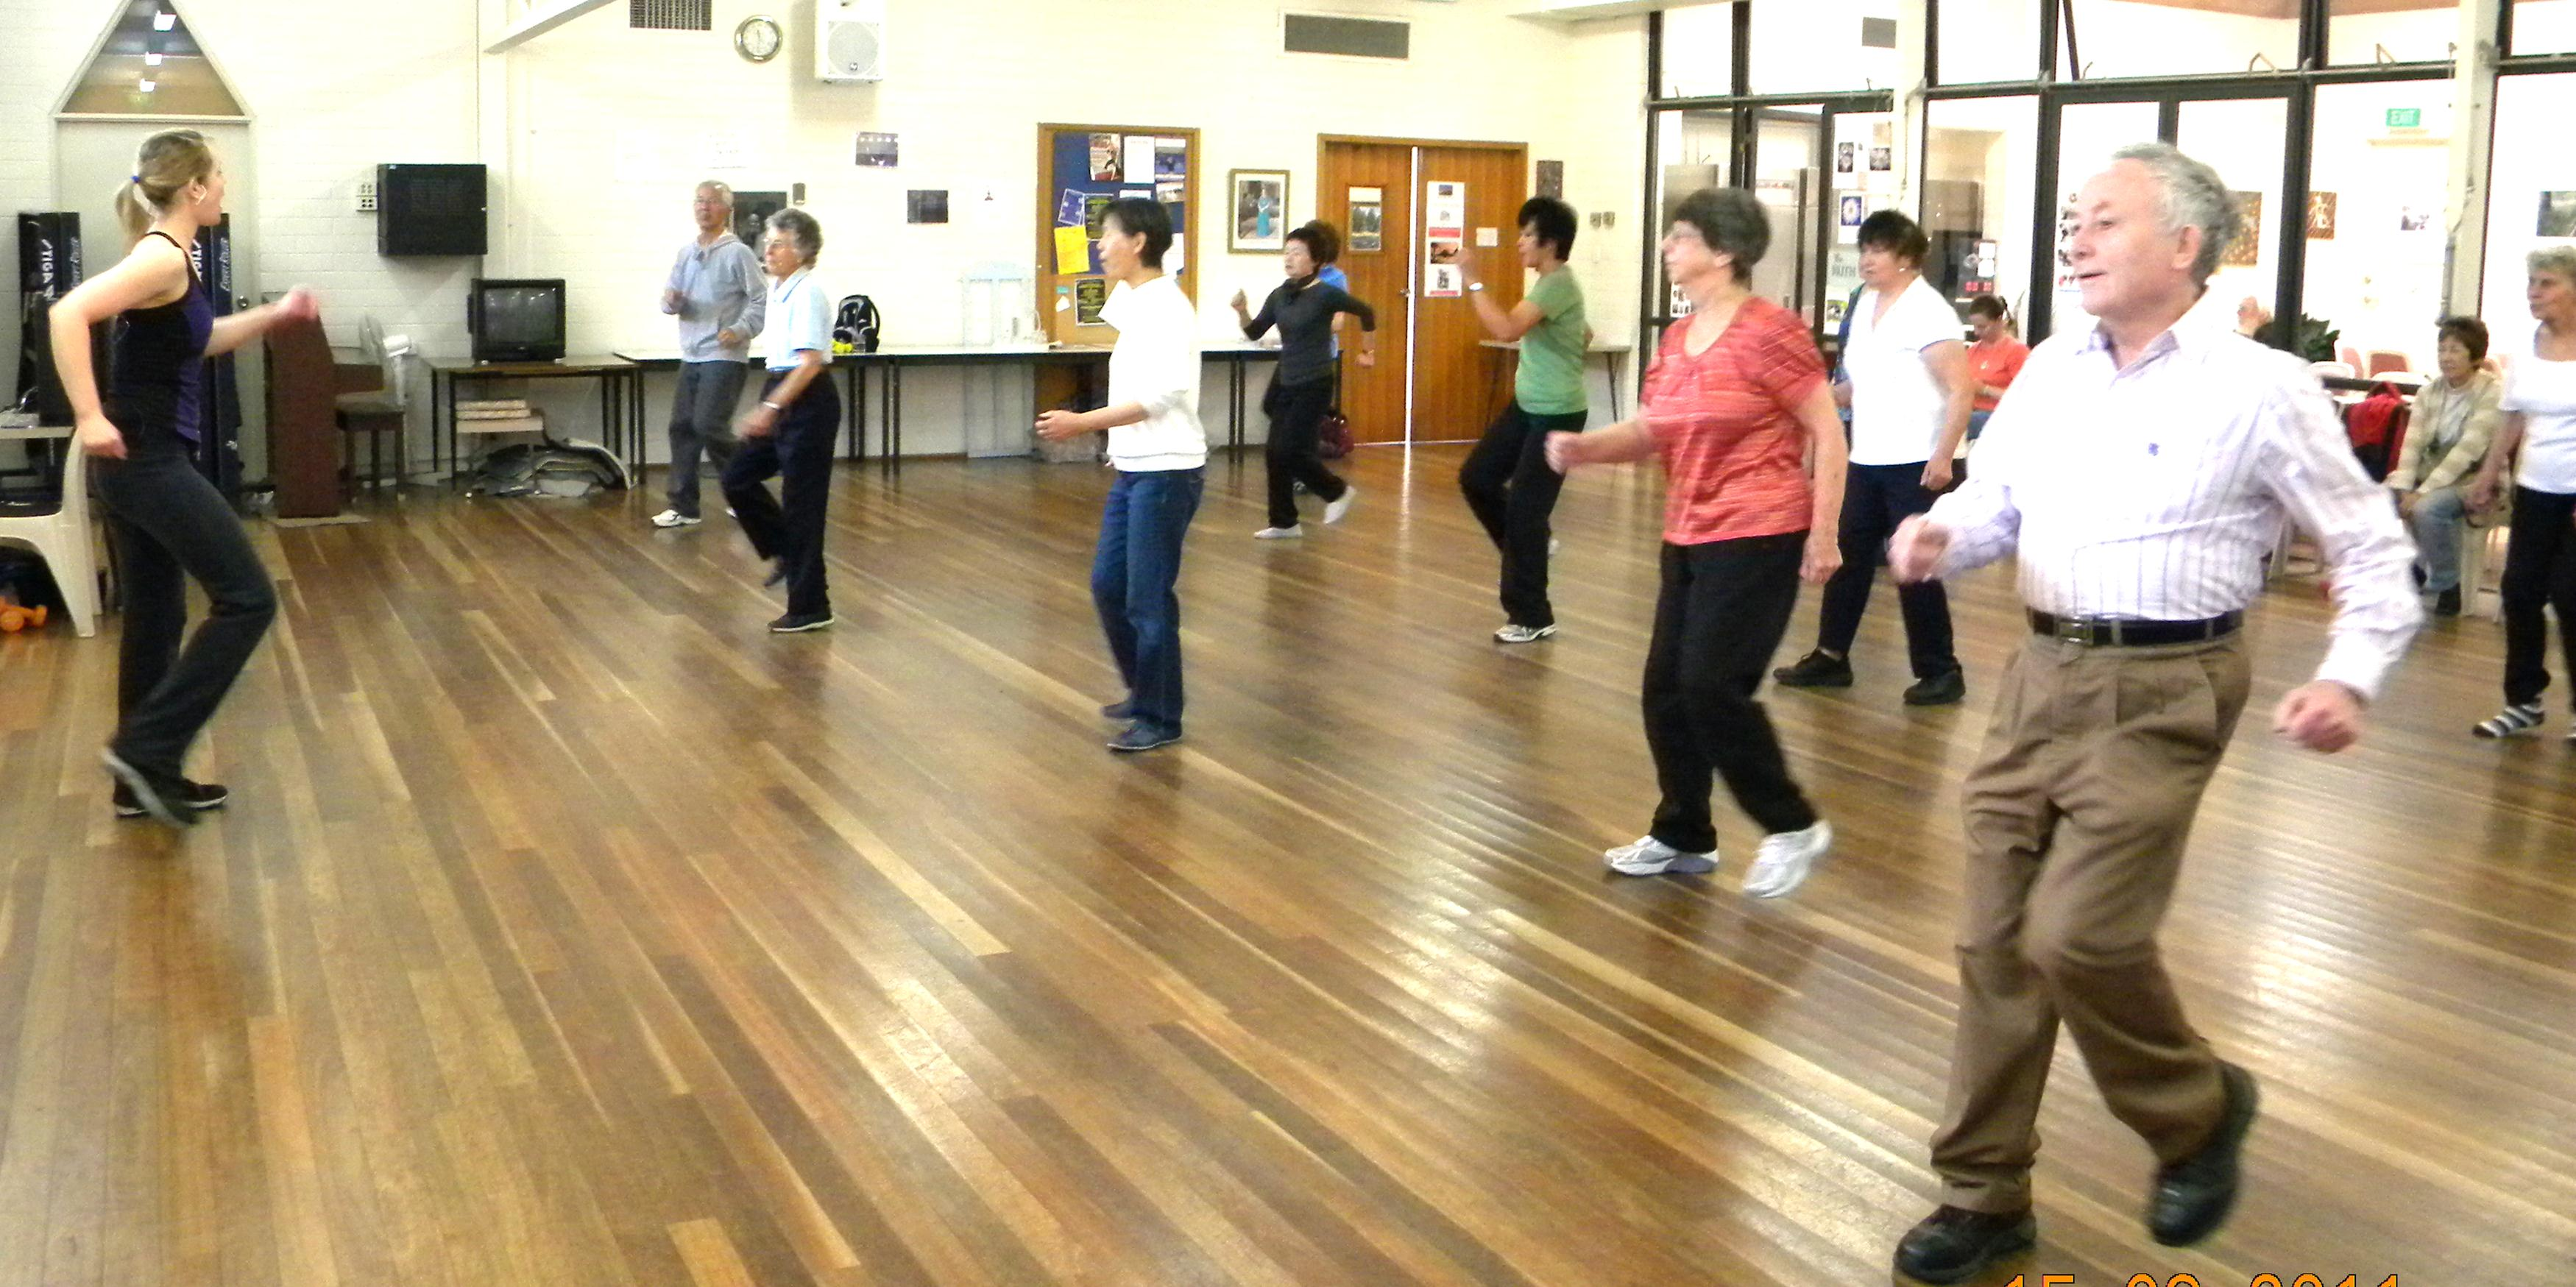 Members of the Canberra Seniors Centre taking part in Jazzercise class.